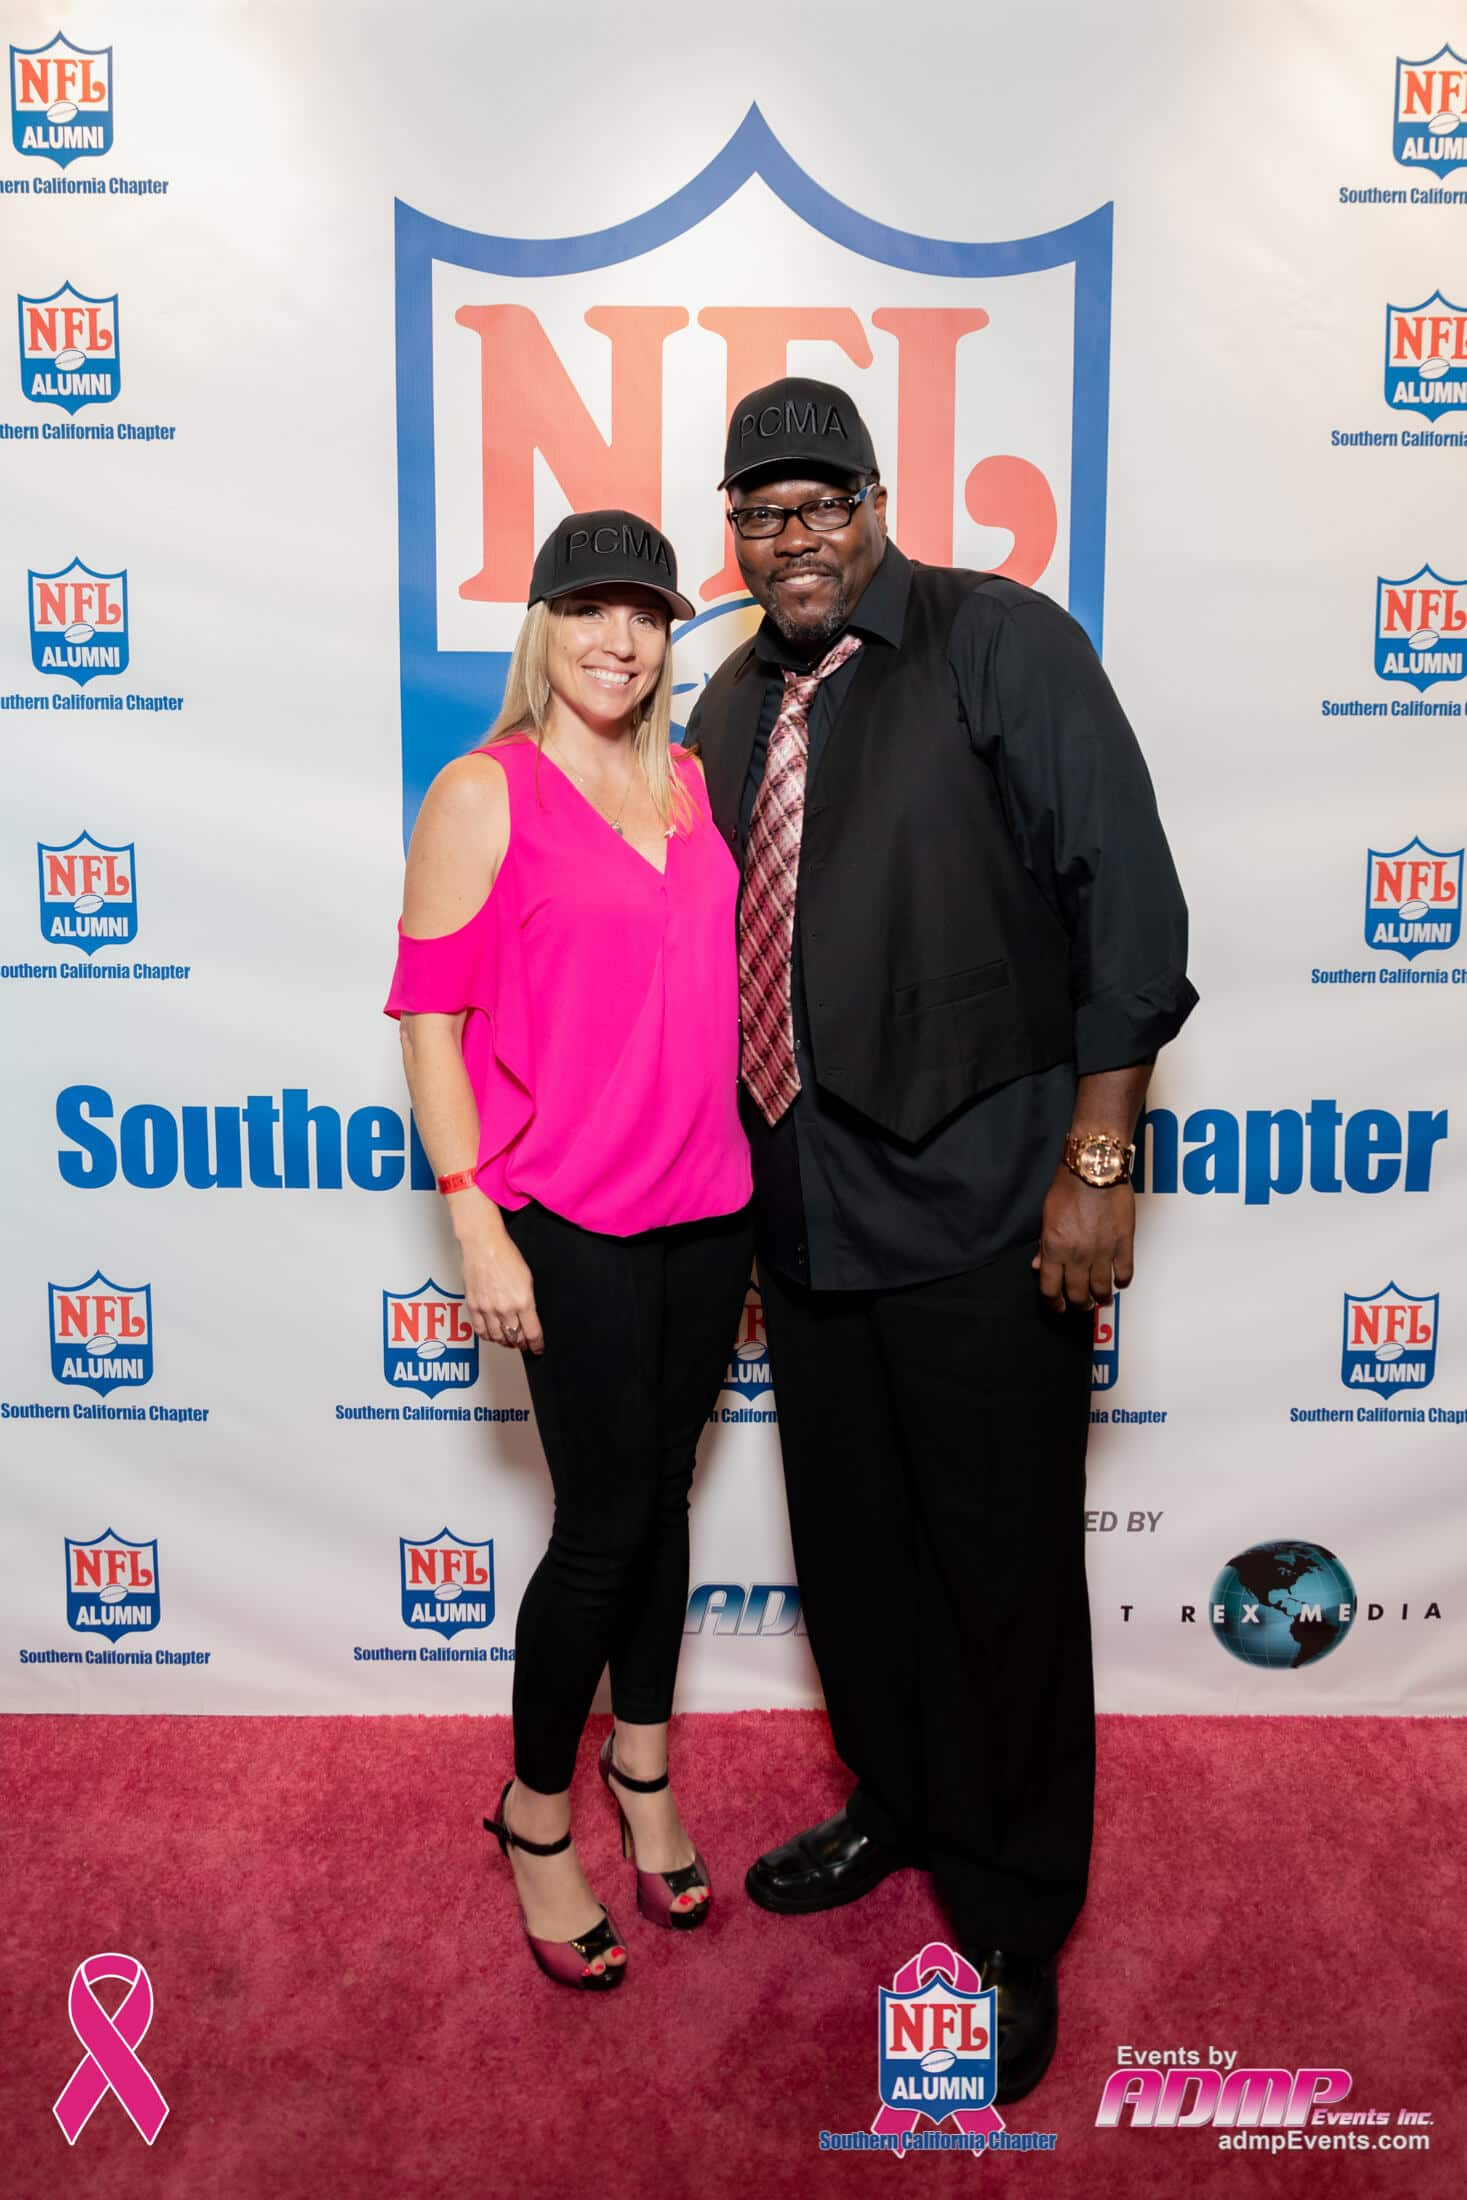 NFL Alumni SoCal Charity Event Series Breast Cancer Event 10-14-19-066